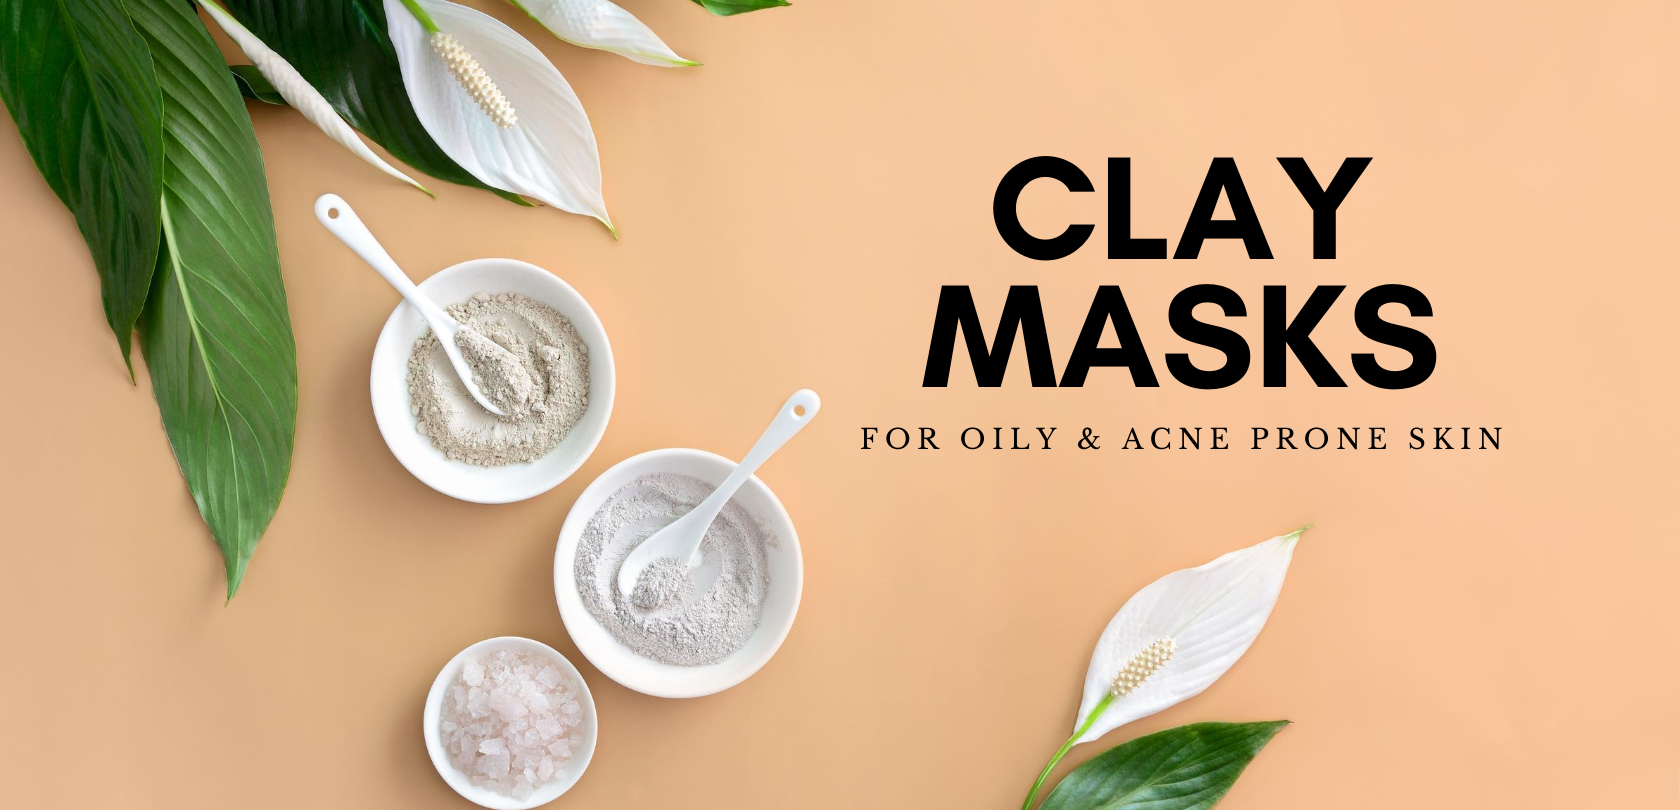 Clay Masks for Oily & Acne Prone Skin